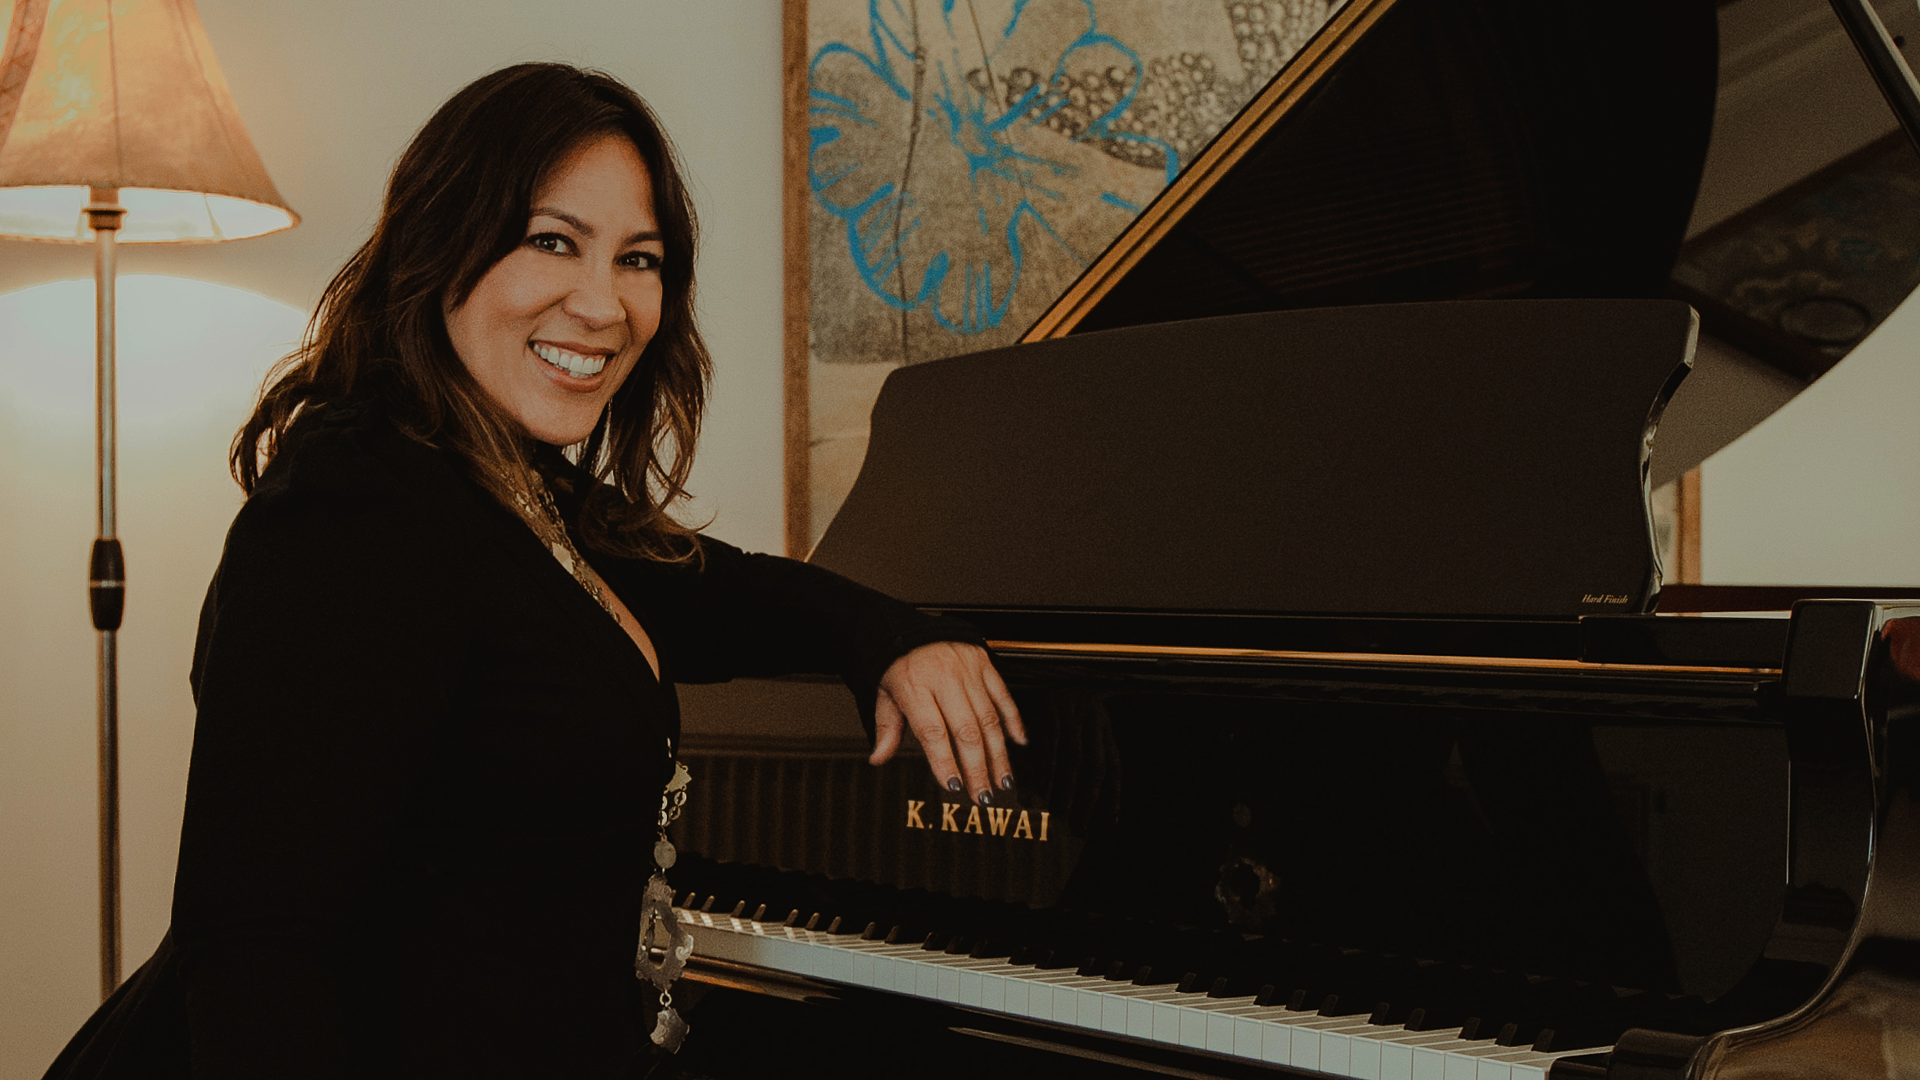 Kate Ceberano debuts at #5 on the ARIA Album Chart with Sweet Inspiration